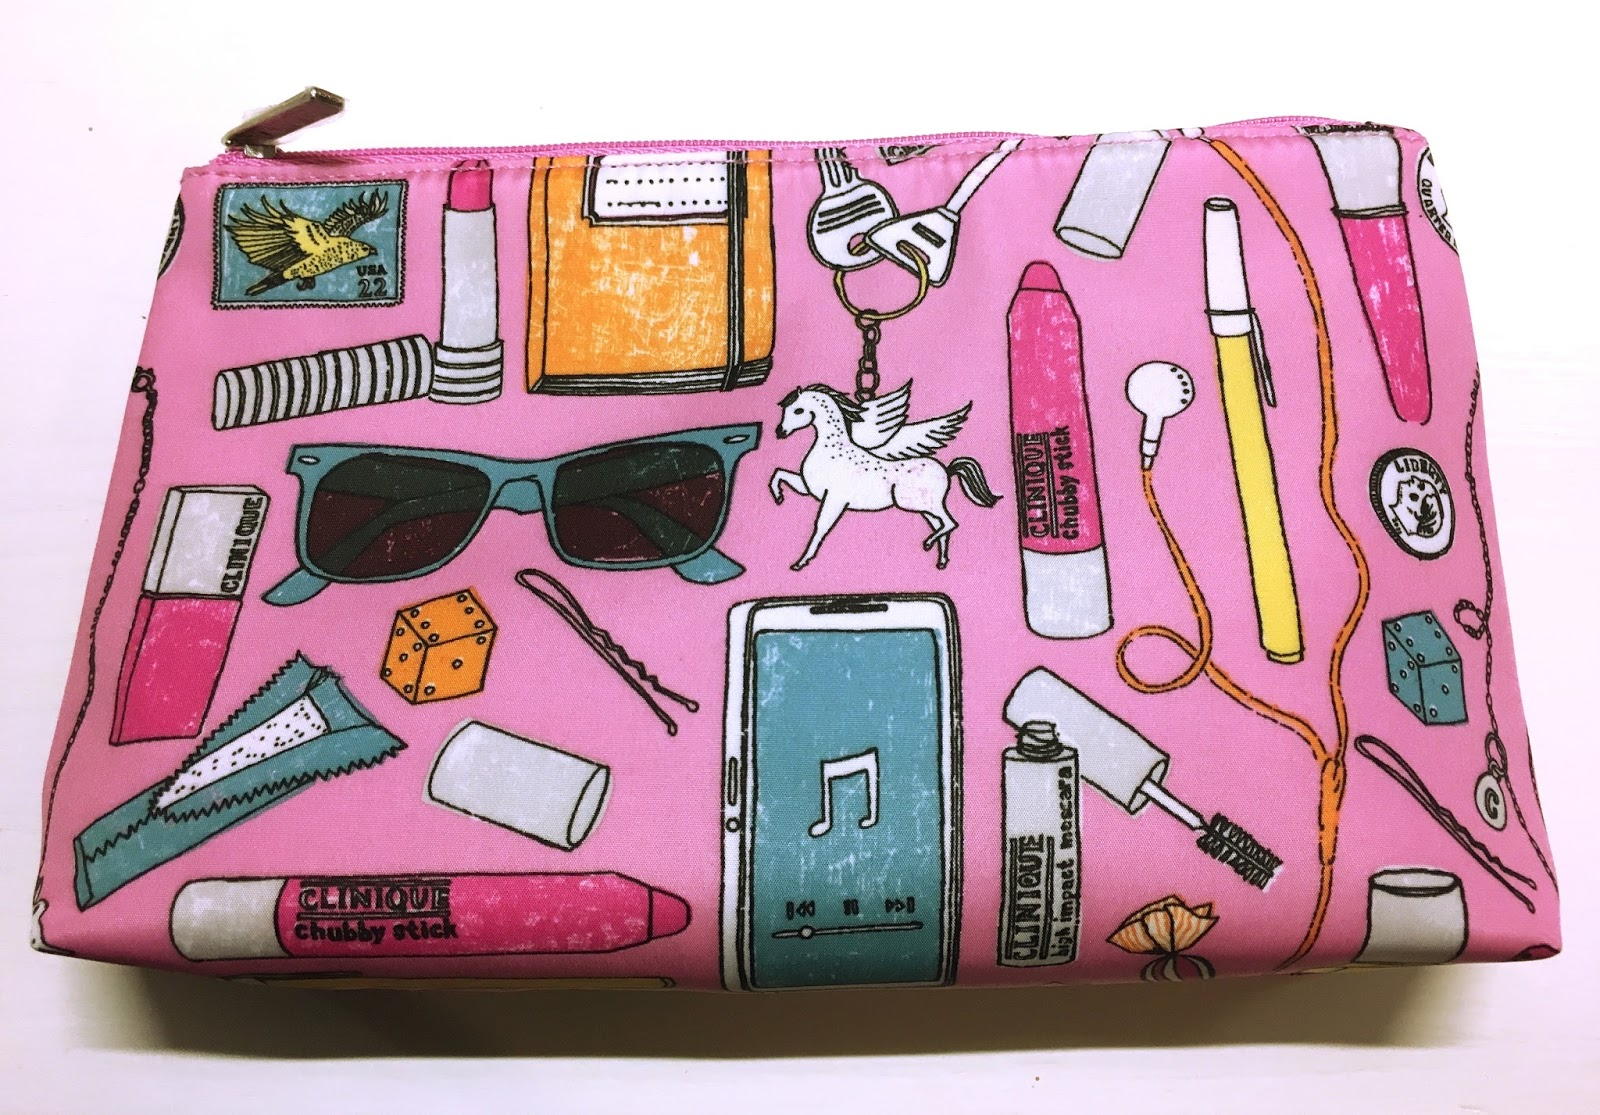 When You Two Items One Of Which Should Be A Treatment Product Moisturiser Serum Foundation Or Mask Get This Super Cute Pink Makeup Bag